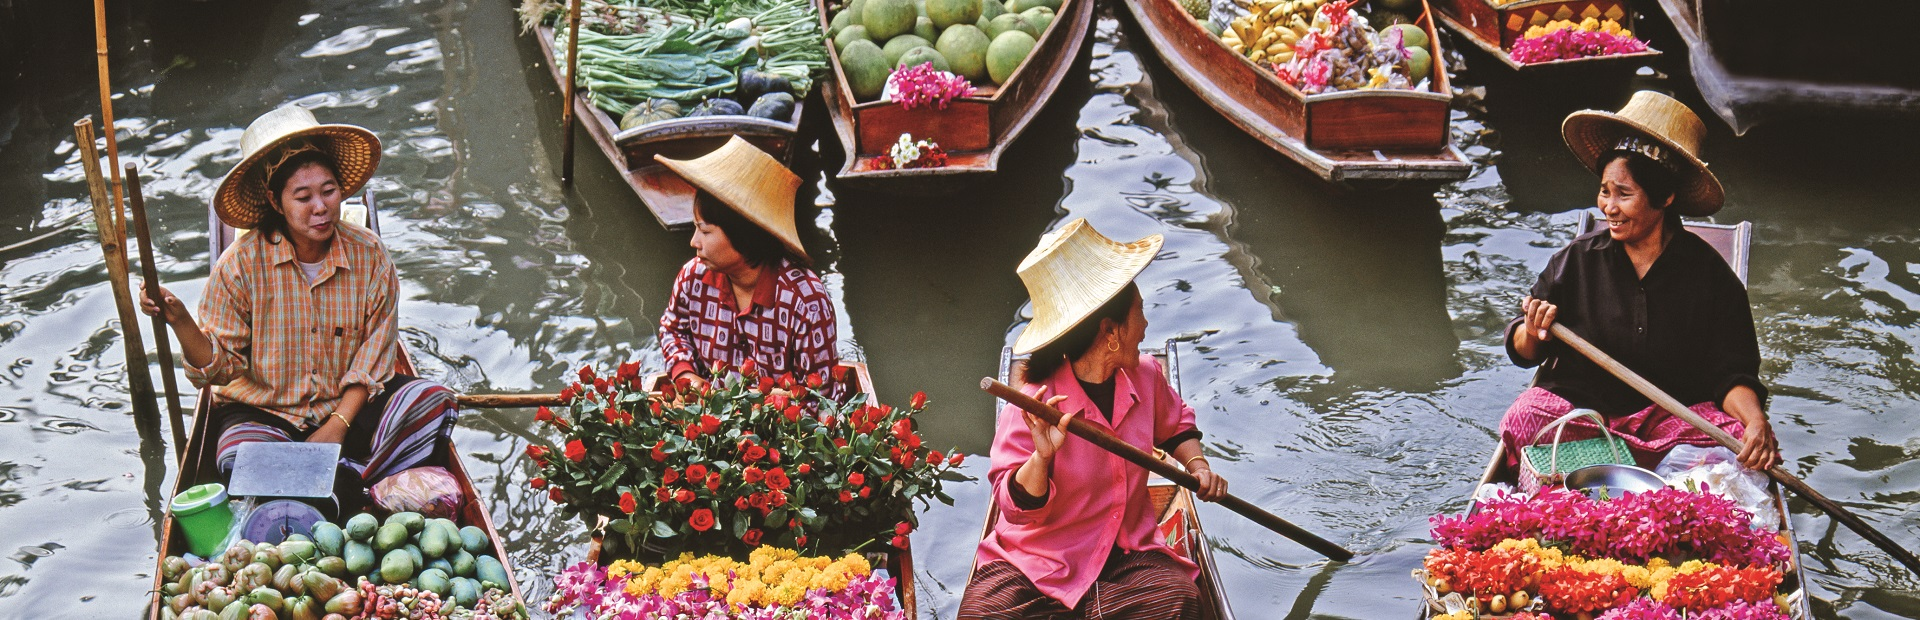 Women market traders in boats laden with fruit and flowers, Damn